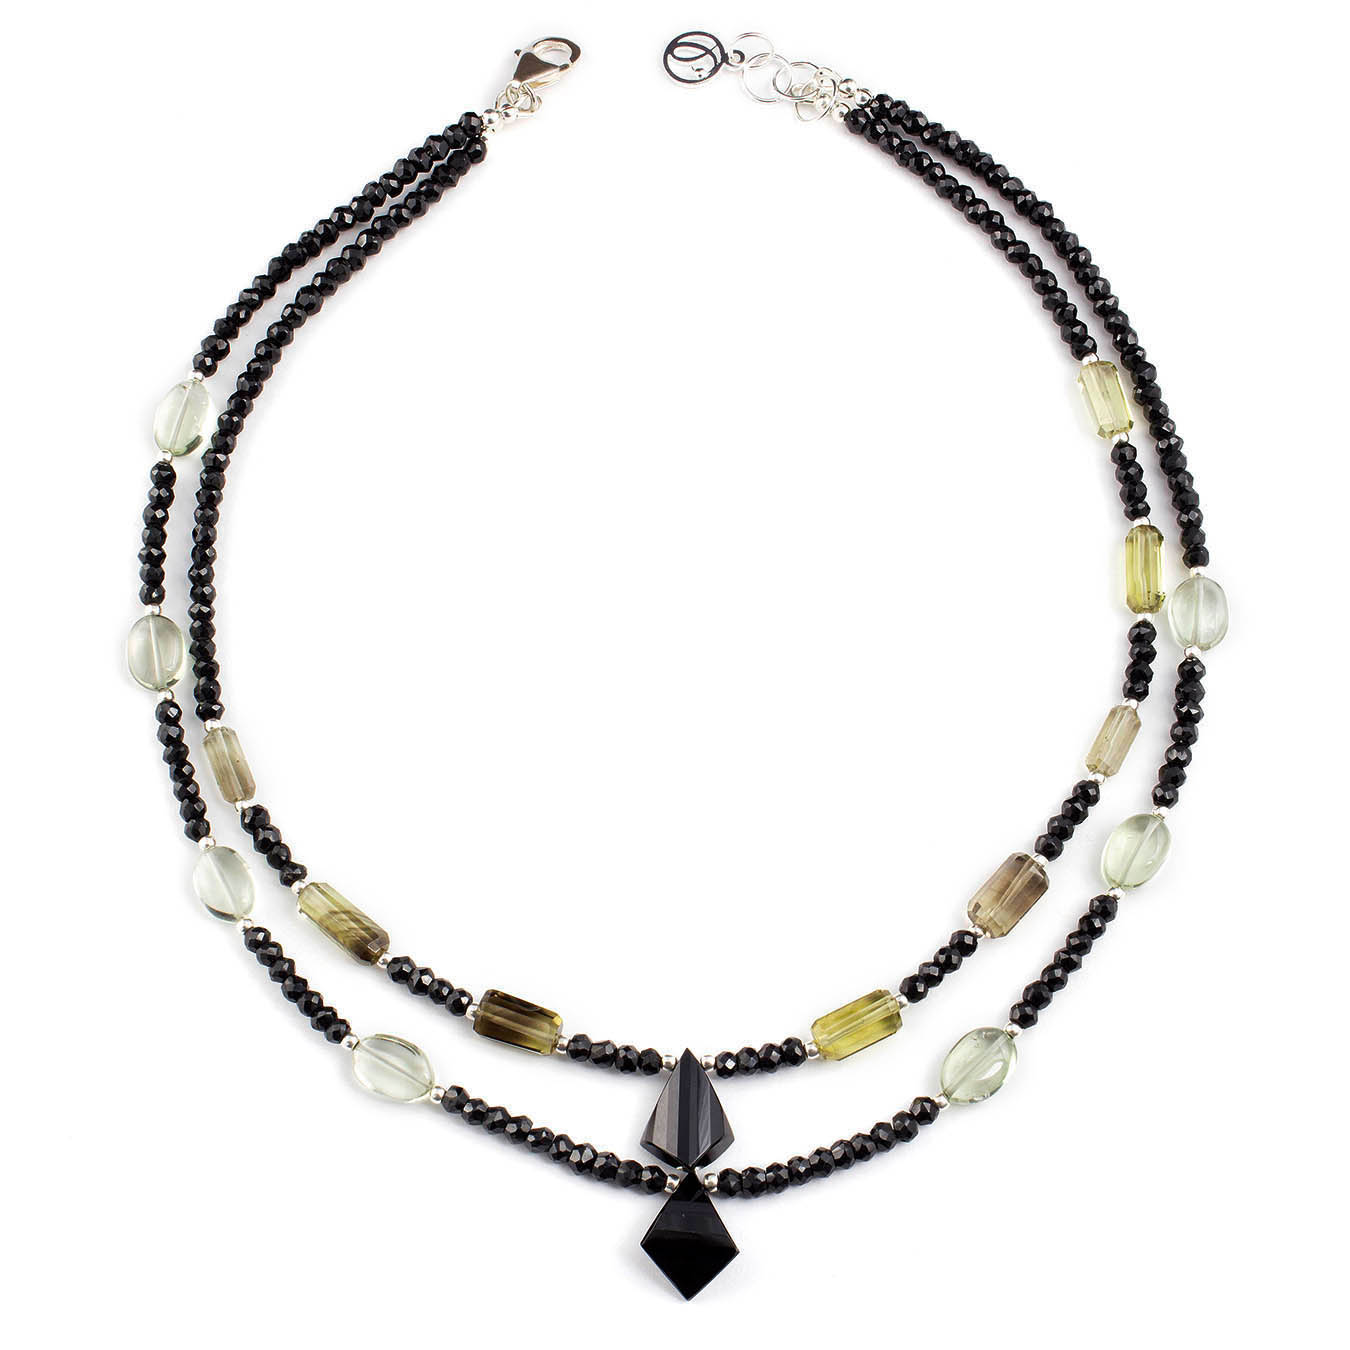 Gemstones necklace made with spinel, lemon quartz and green amethyst